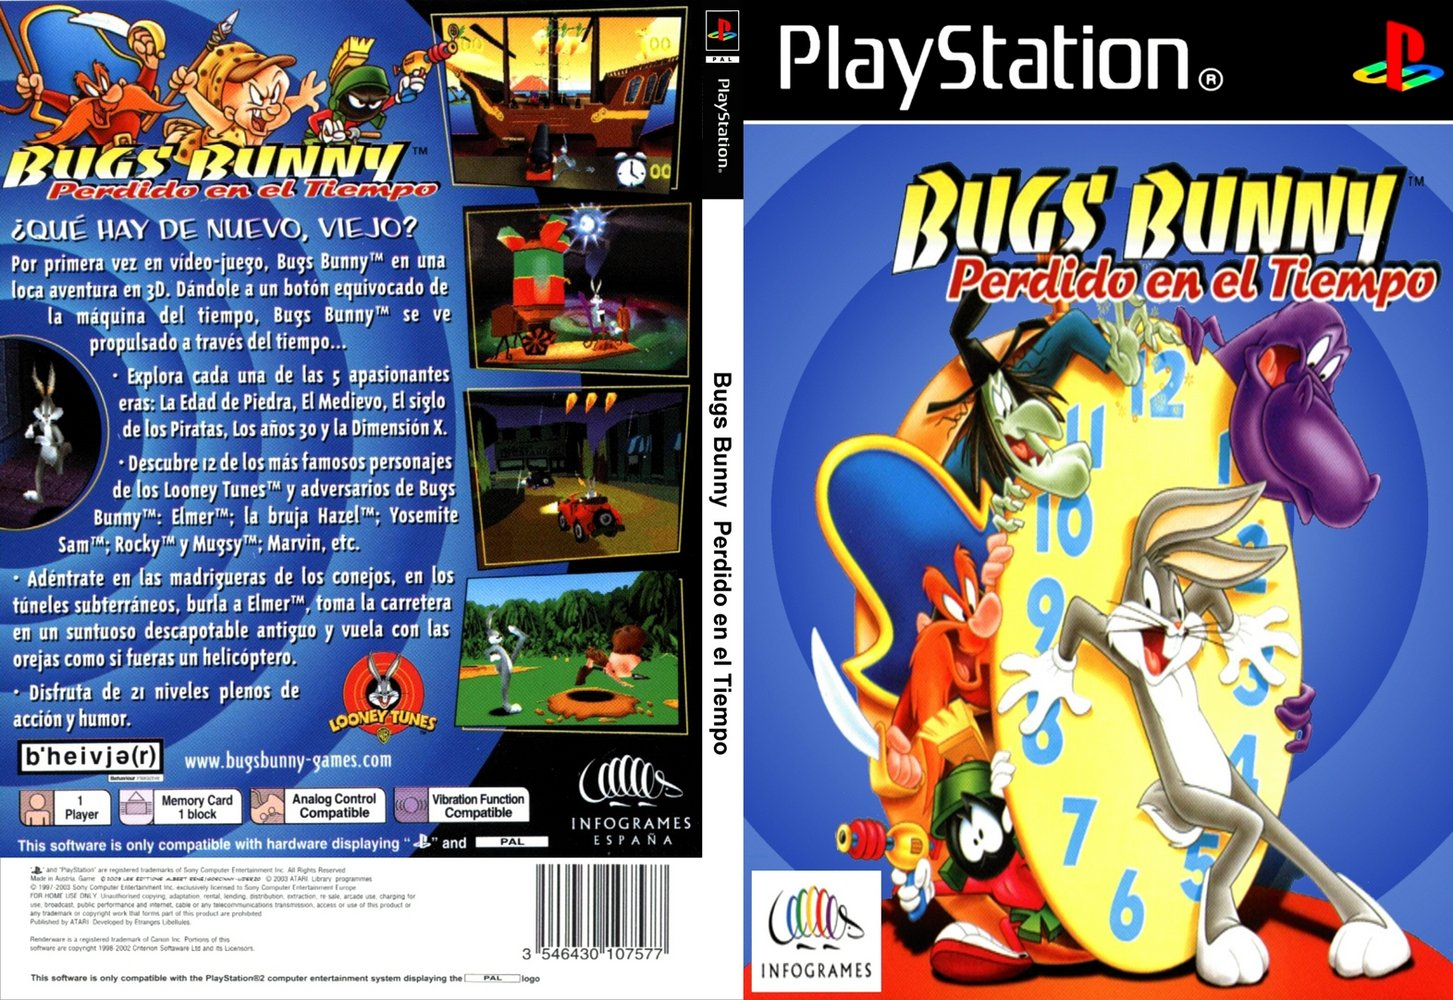 http://4.bp.blogspot.com/_kTPgR2JXLkY/TJLQGVbC-cI/AAAAAAAAAHk/sFfe8AtmJlU/s1600/Bugs_Bunny_Lost_In_The_Time_Spanish_Dvd_Slim_pal-%5Bcdcovers_cc%5D-front.jpg